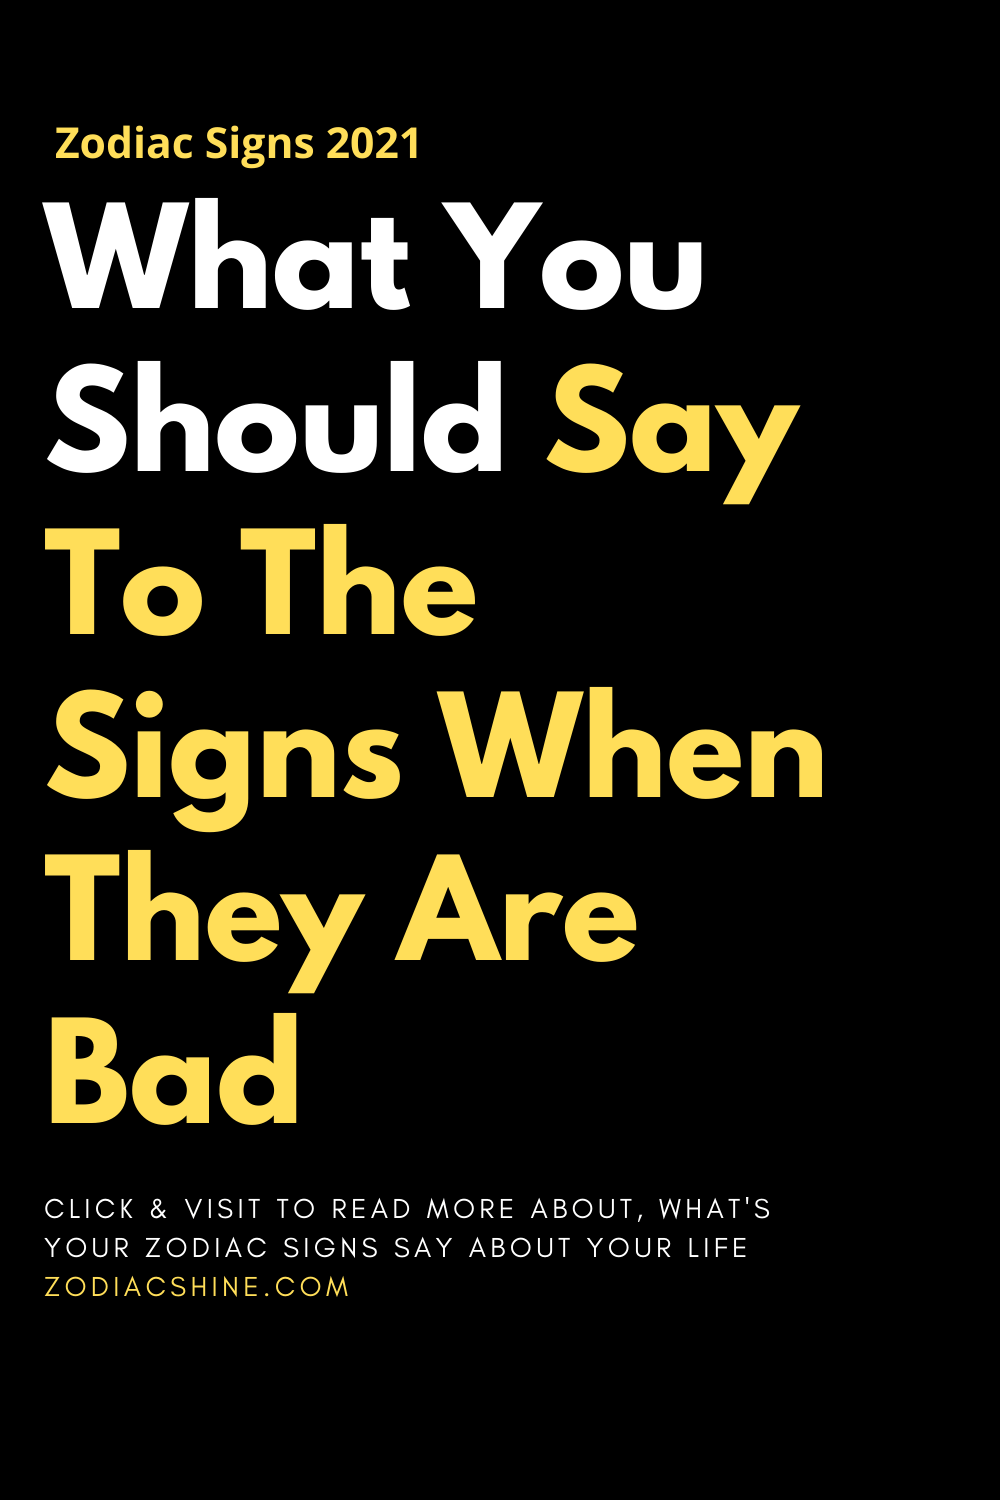 What You Should Say To The Signs When They Are Bad